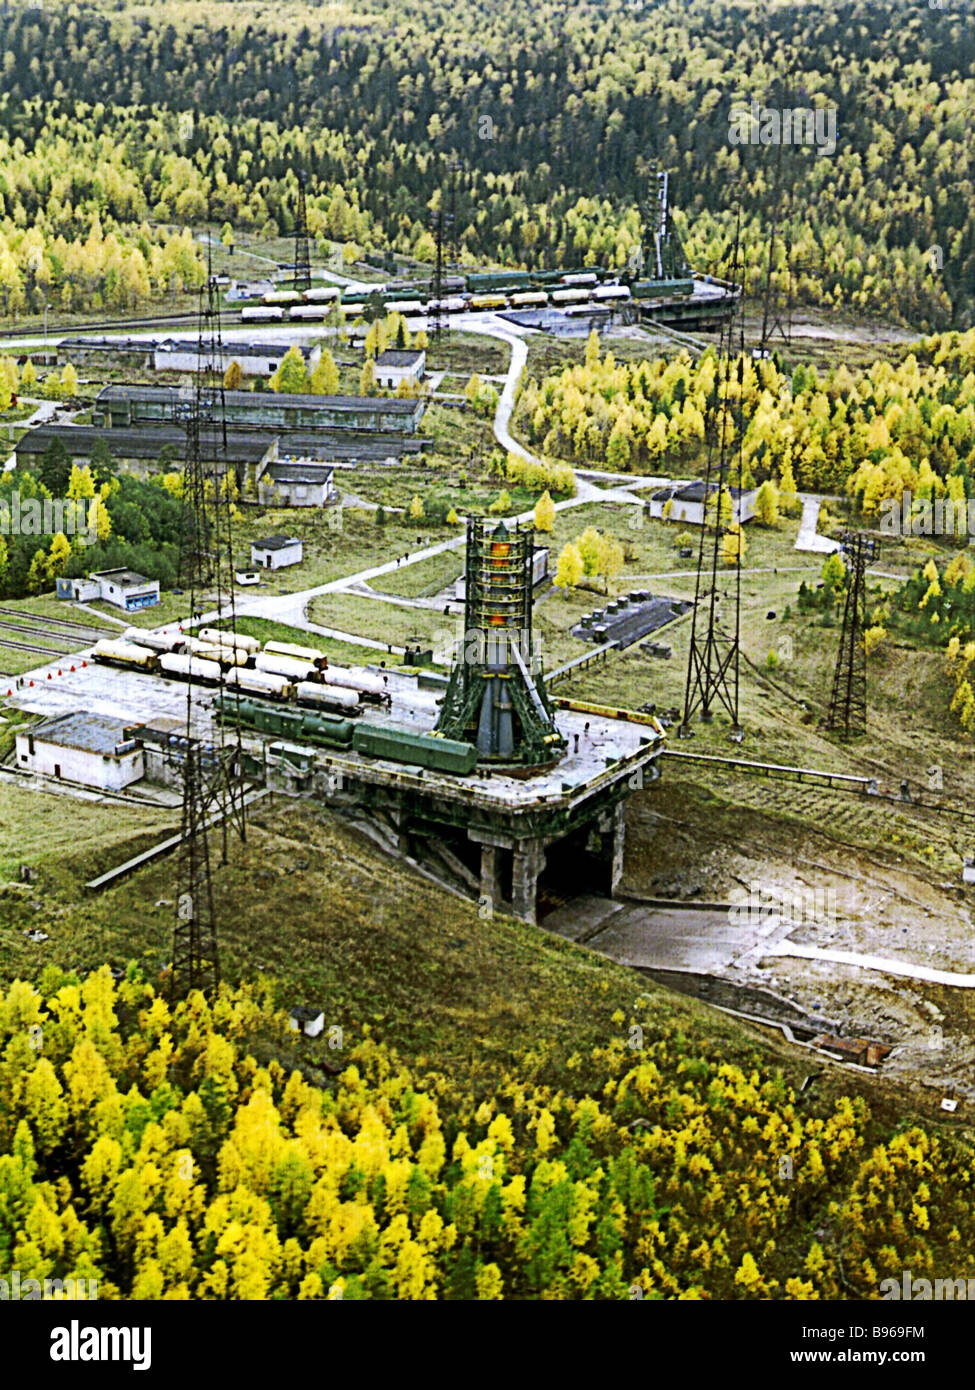 Placing Soyuz rocket on launch pad of Plesetsk space center From archives of the Russian Space Research Institute - Stock Image